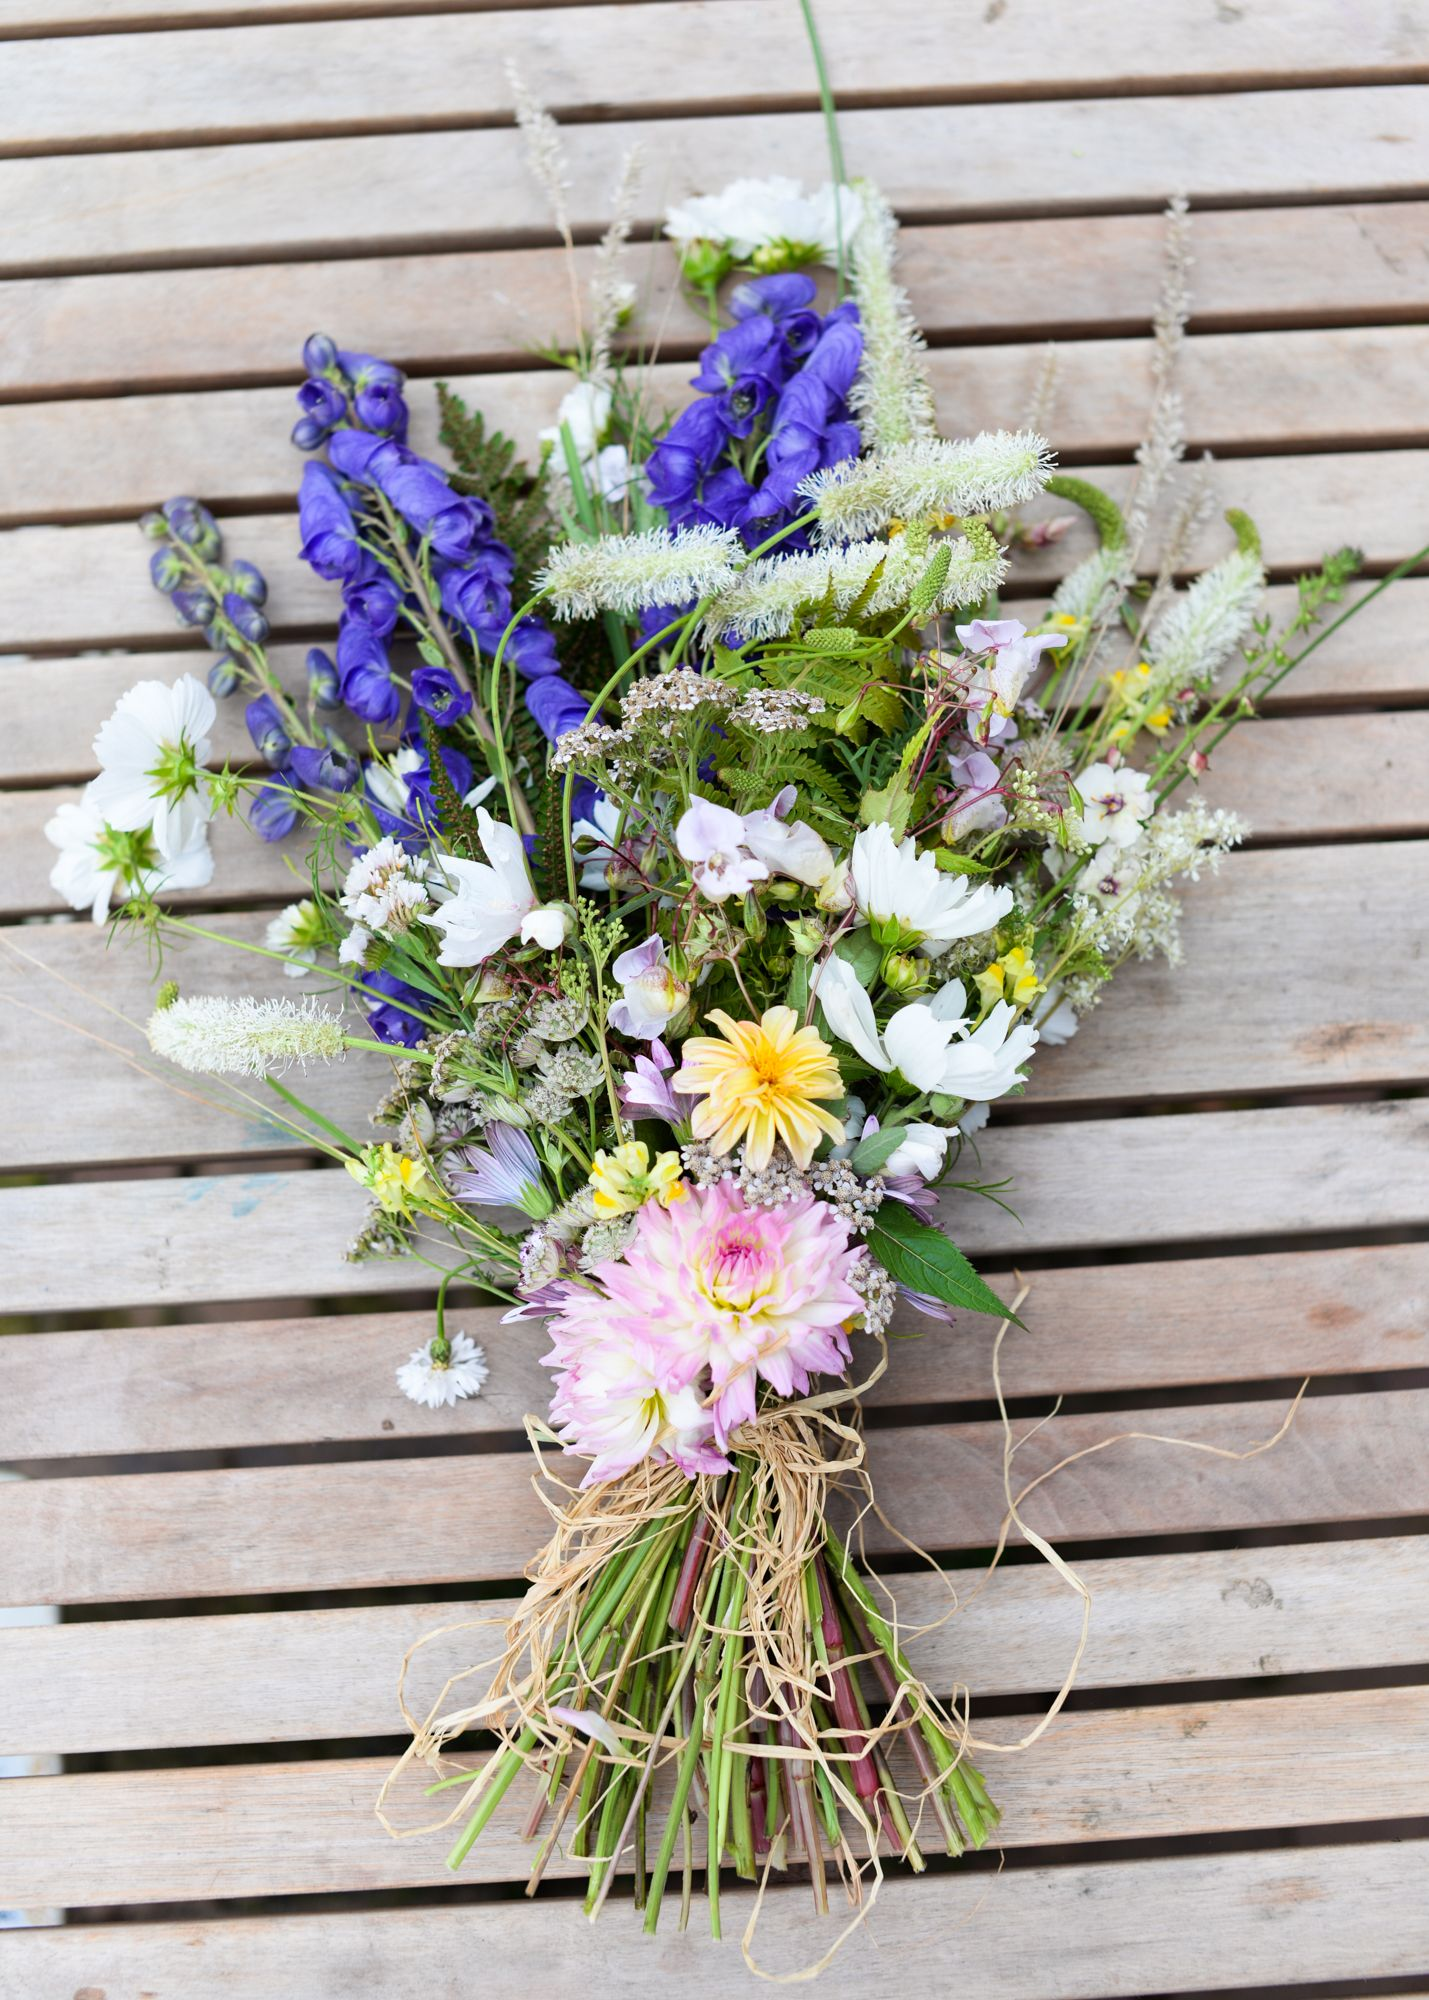 Daffodils bluebells funeral sheaf all british natural floral daffodils bluebells funeral sheaf all british natural floral tribute herefordshire natural funeral flowers worcestershire pinterest british flowers izmirmasajfo